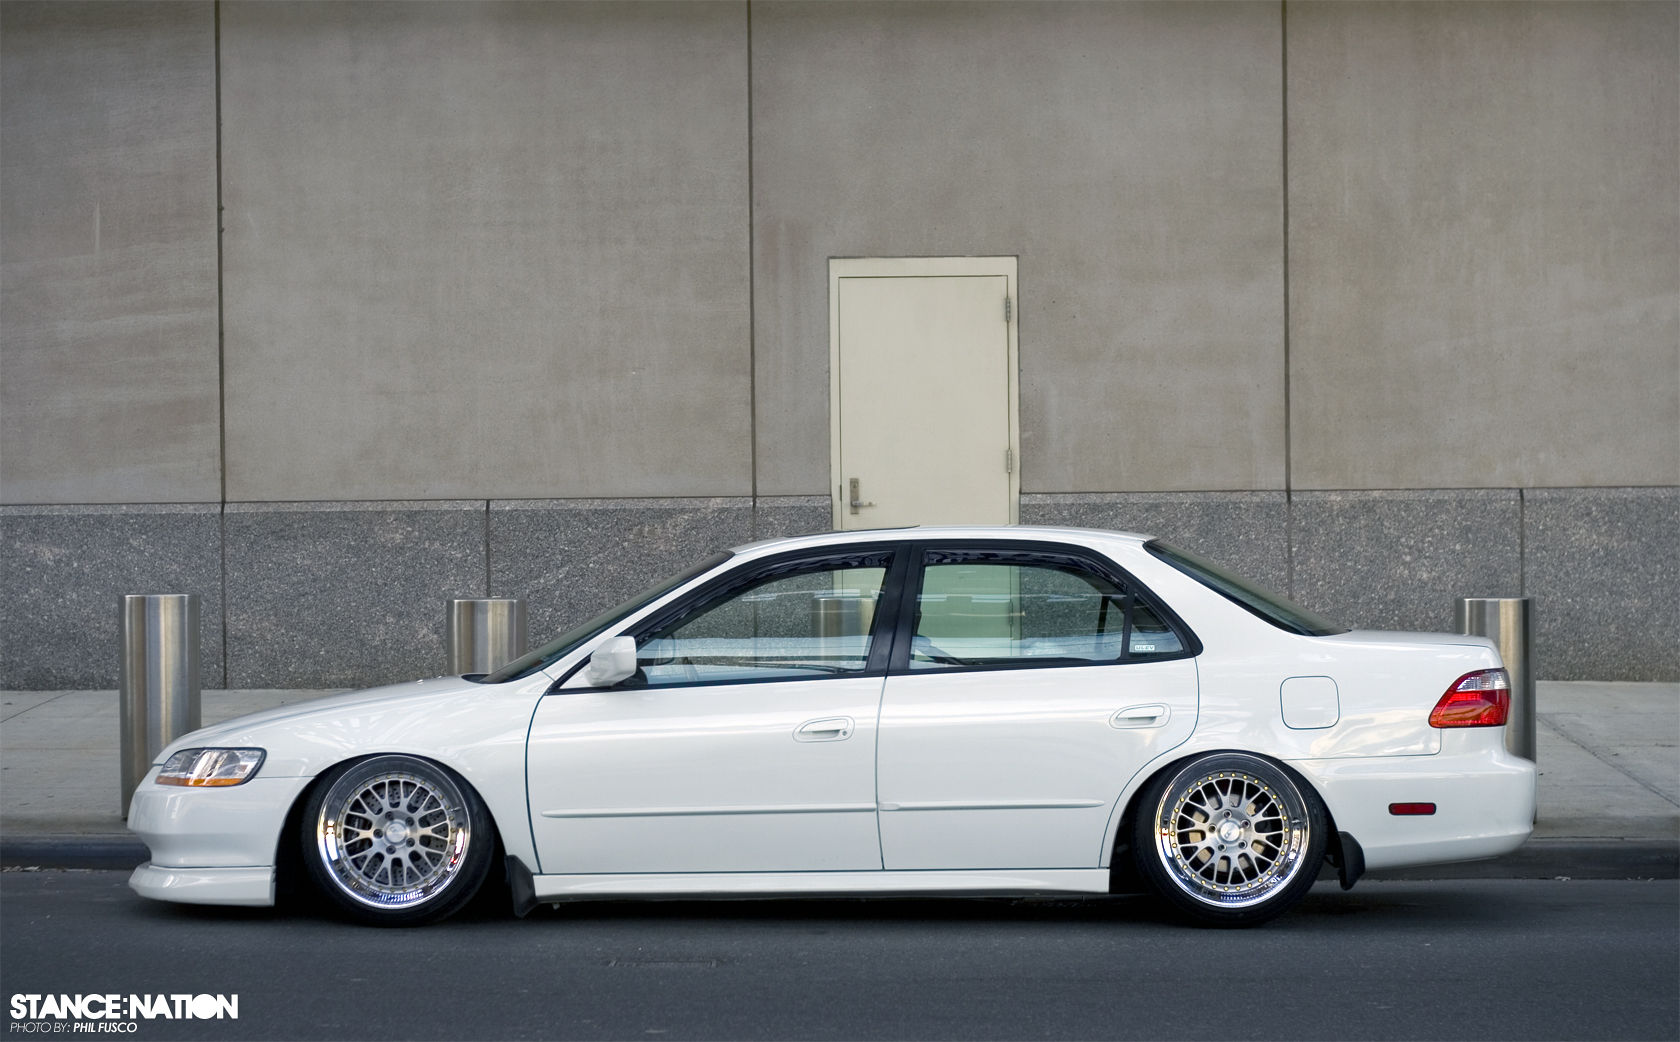 Fresh Proper Accord Sedan Stancenation Form Function